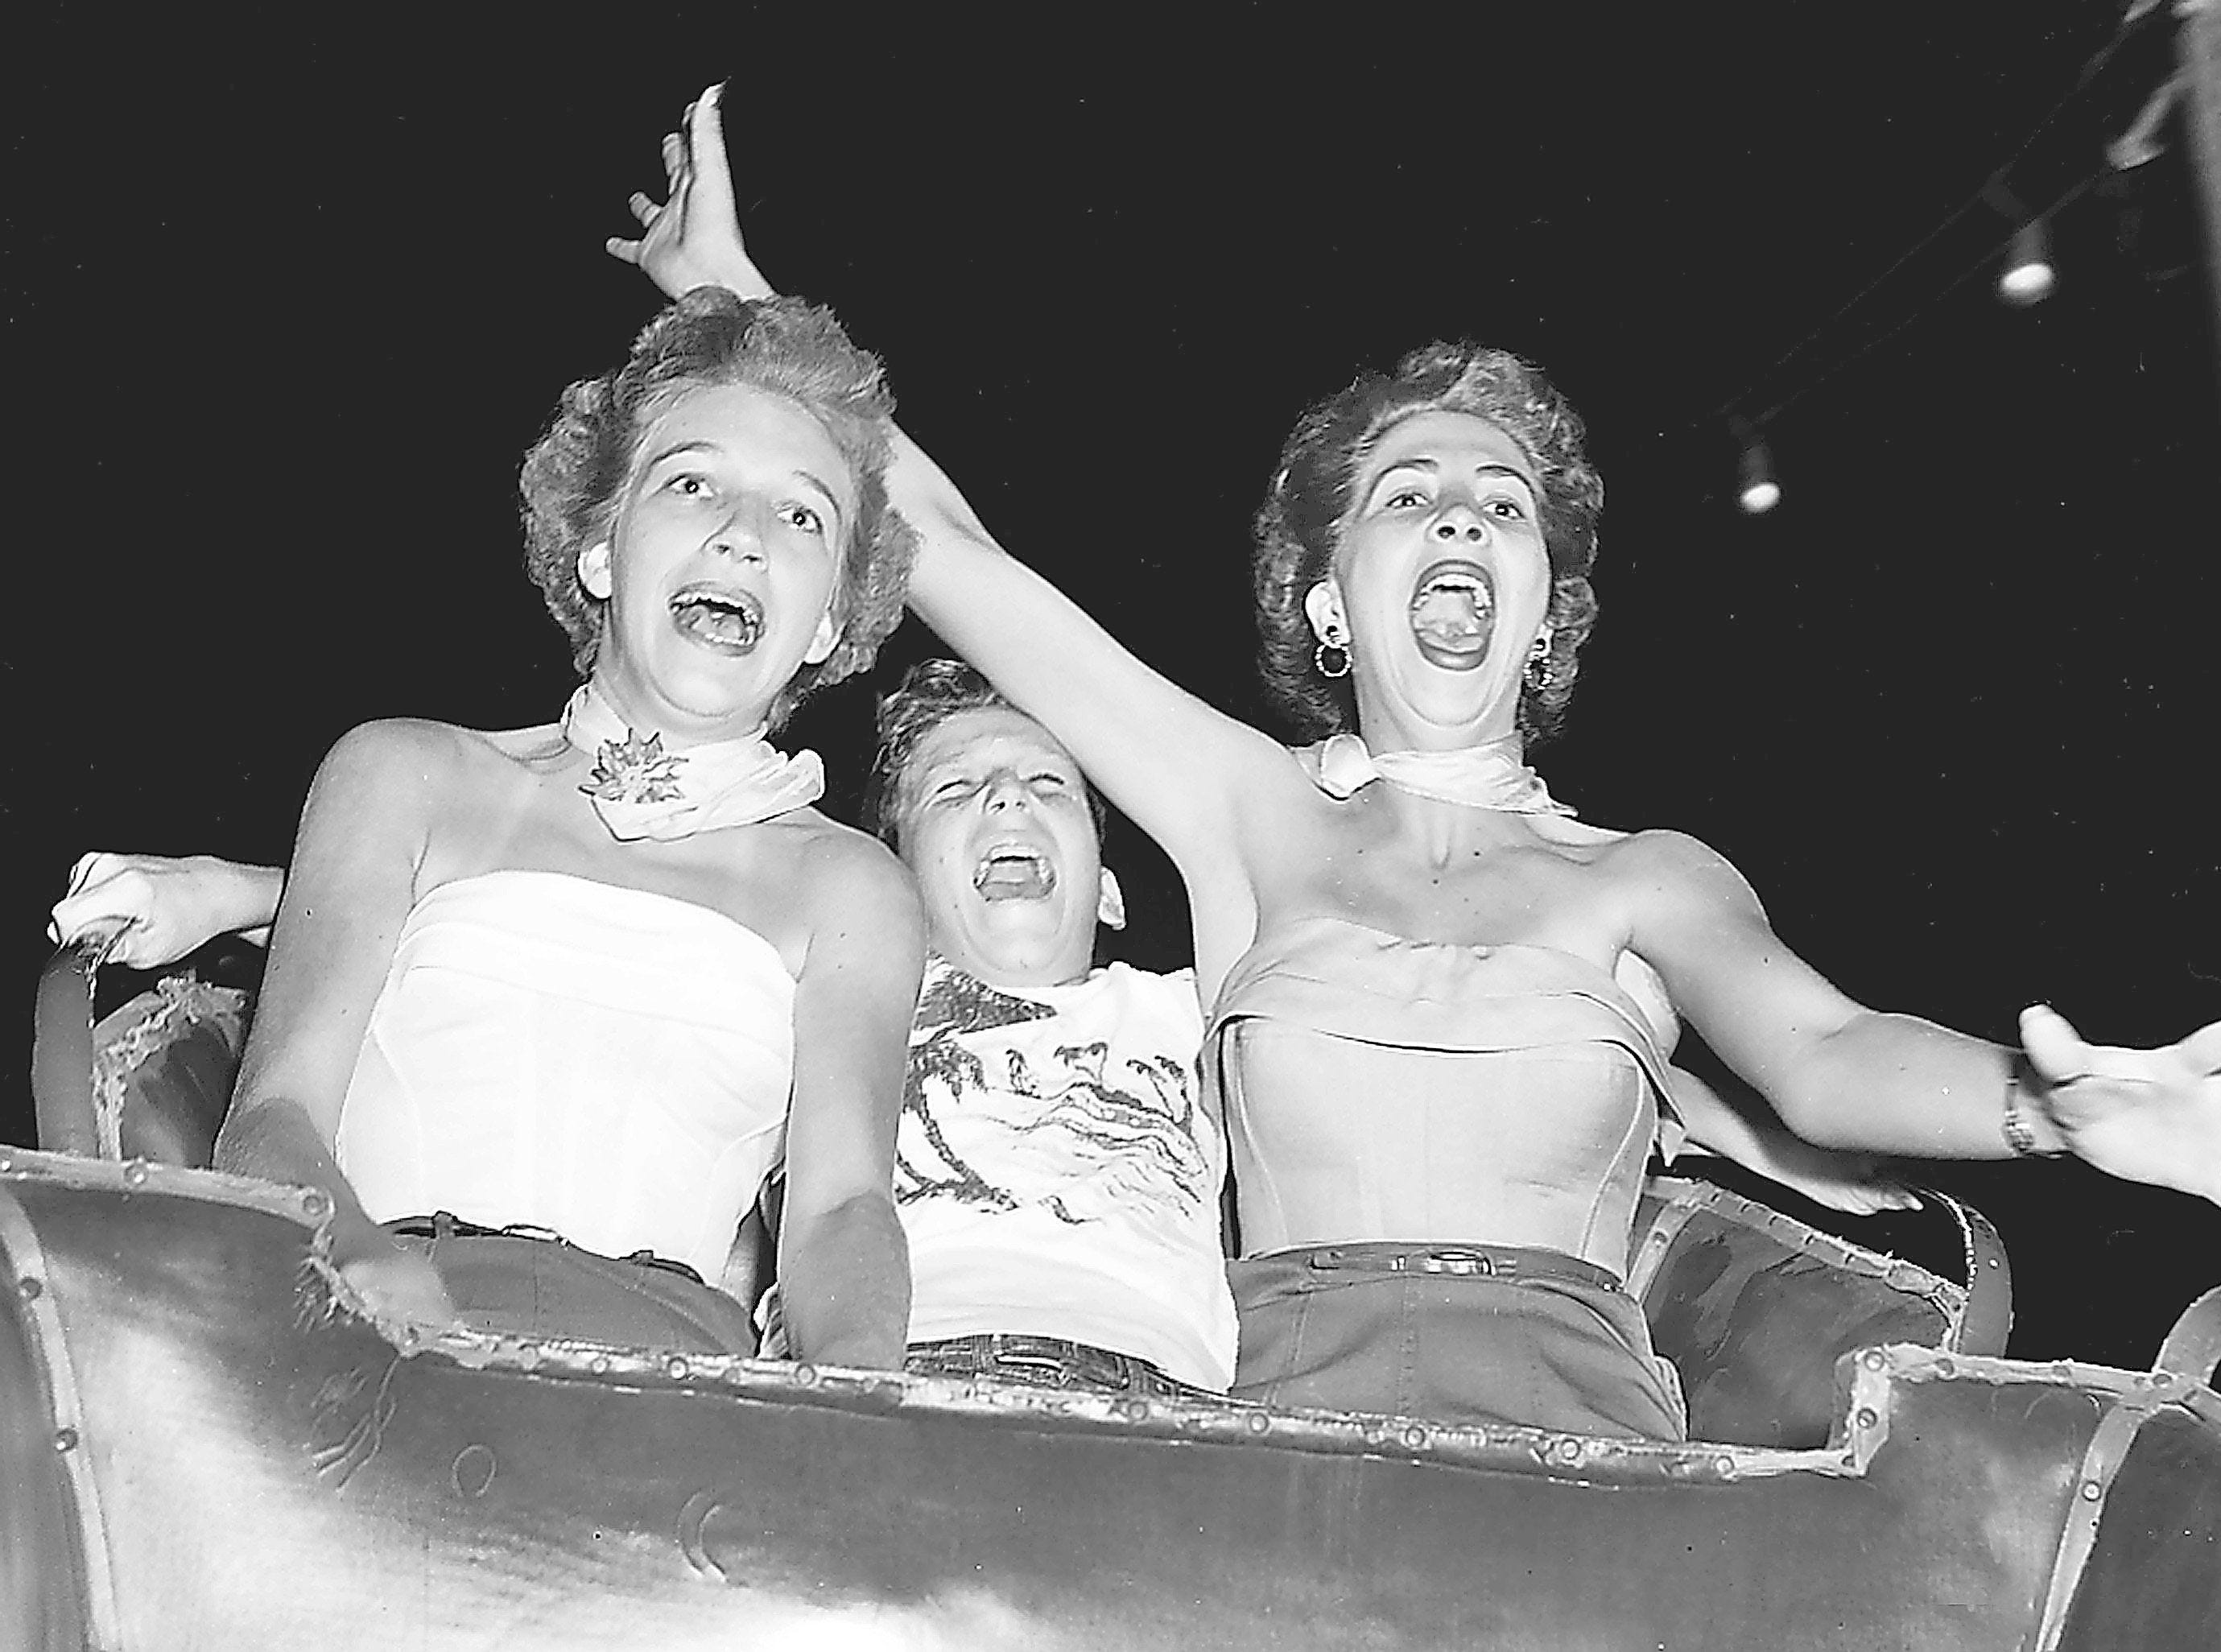 The nervous thrill of taking a dip on the Pippin at the Fairgrounds is etched on the faces of Sonja Enos, 15, left, Don Enos, 12, both of 2321 Hubbard, and Loretta Greathouse, 19, of Troy, Ala., on Aug. 22, 1953.